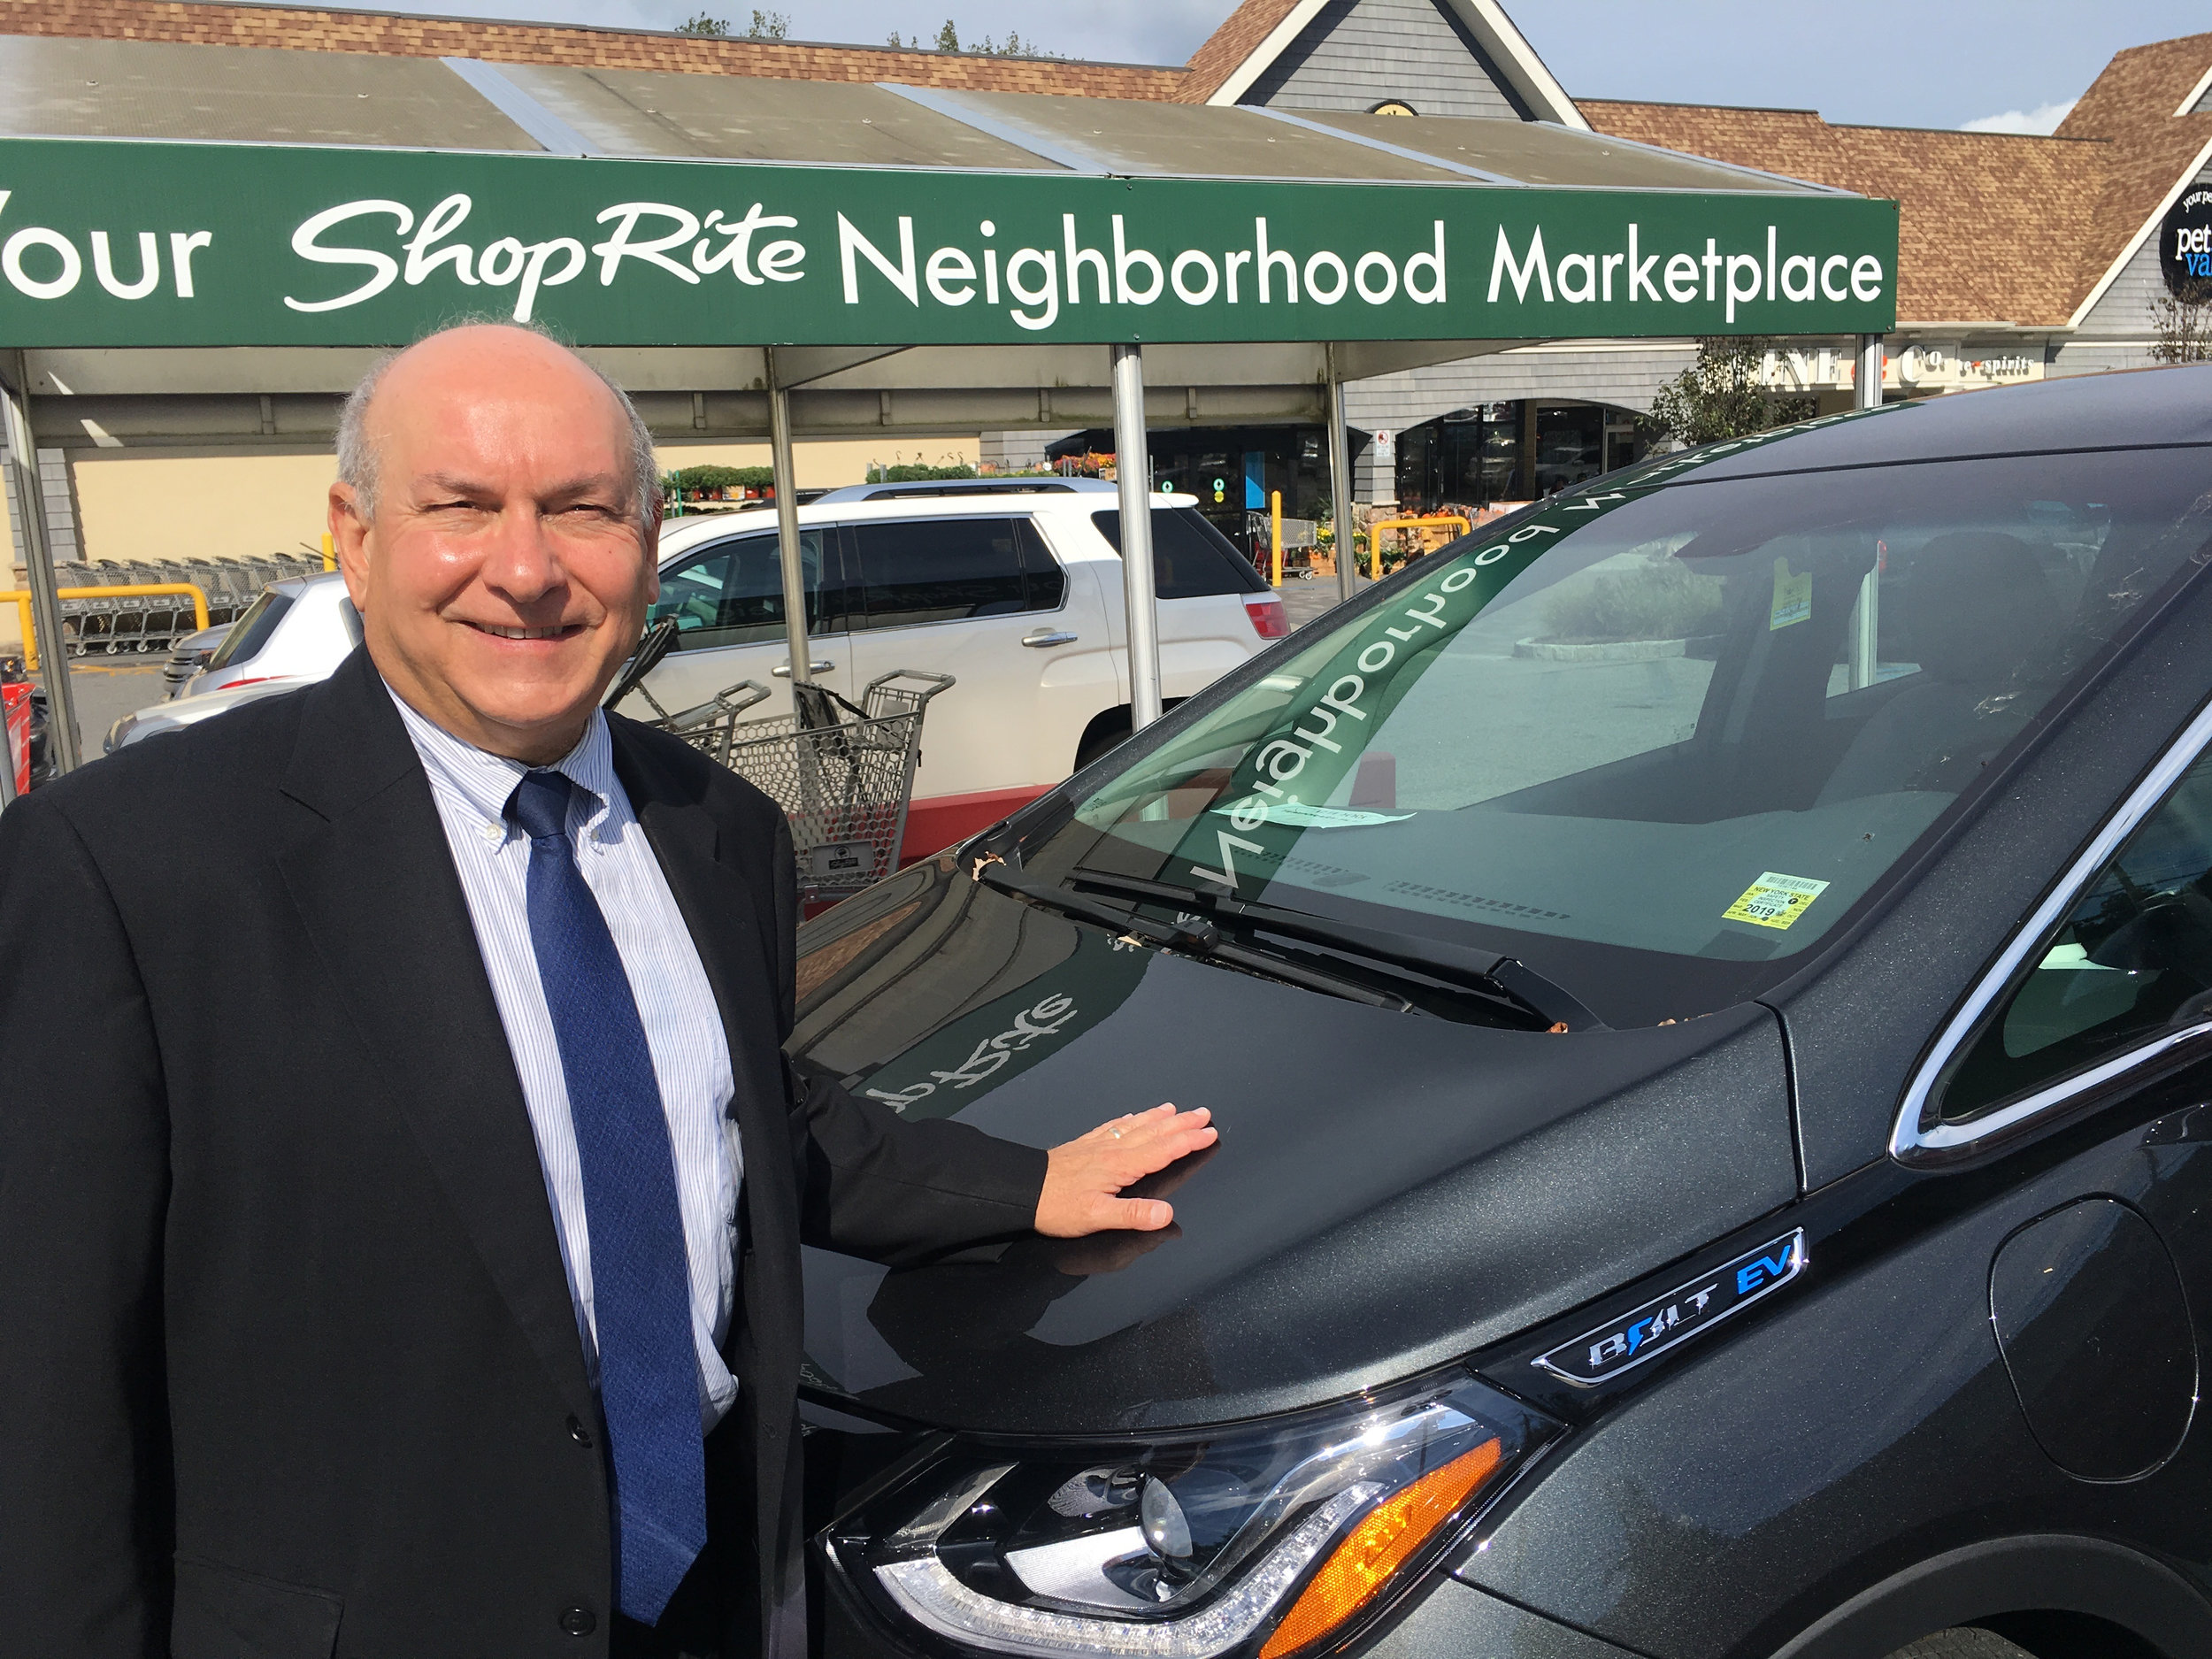 Chris with his Electric Vehicle, the Chevy Bolt